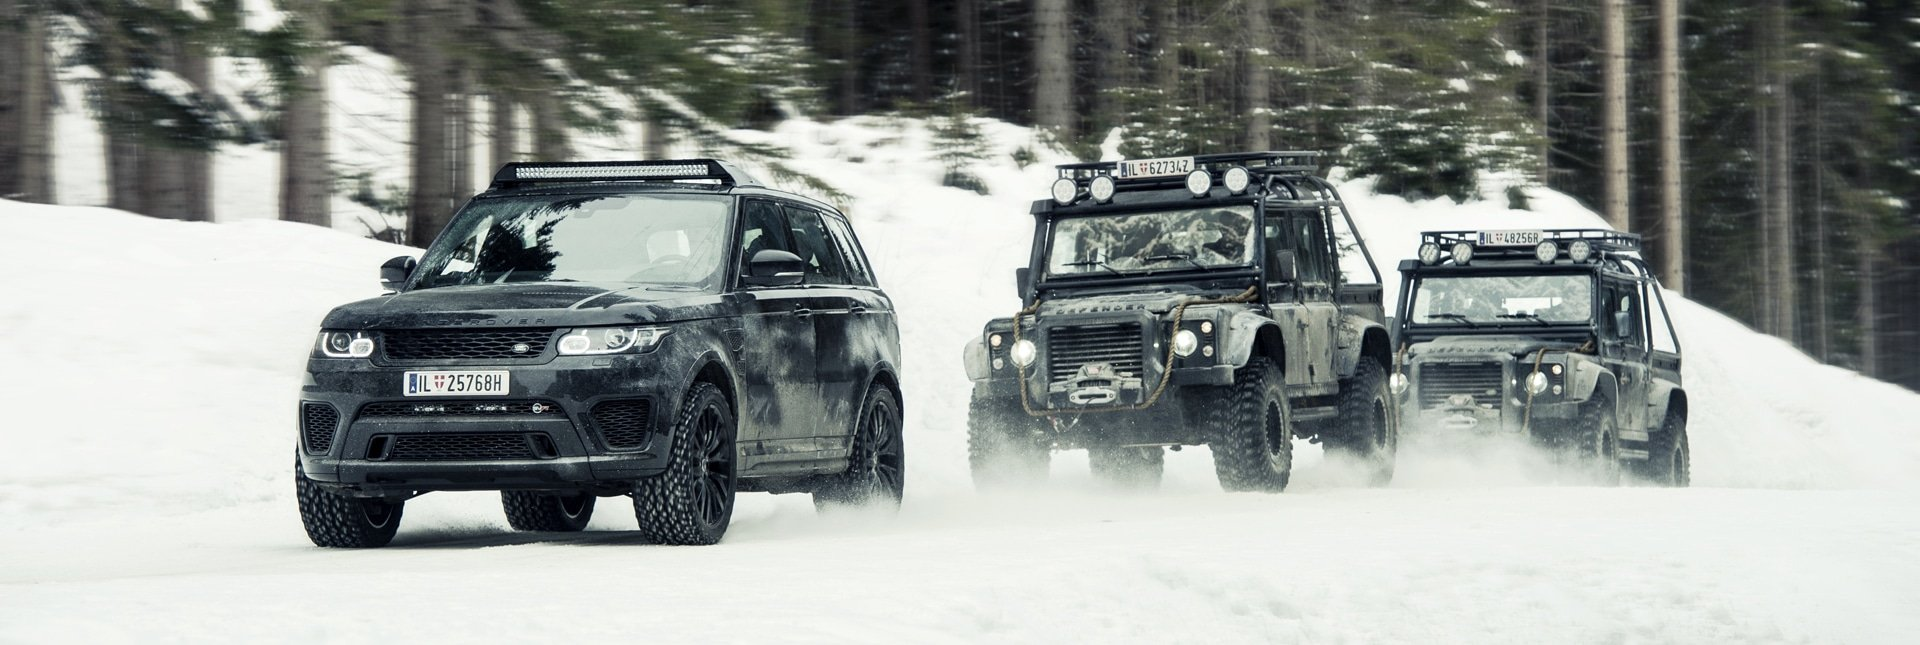 Land Rover Range Rover in Snow